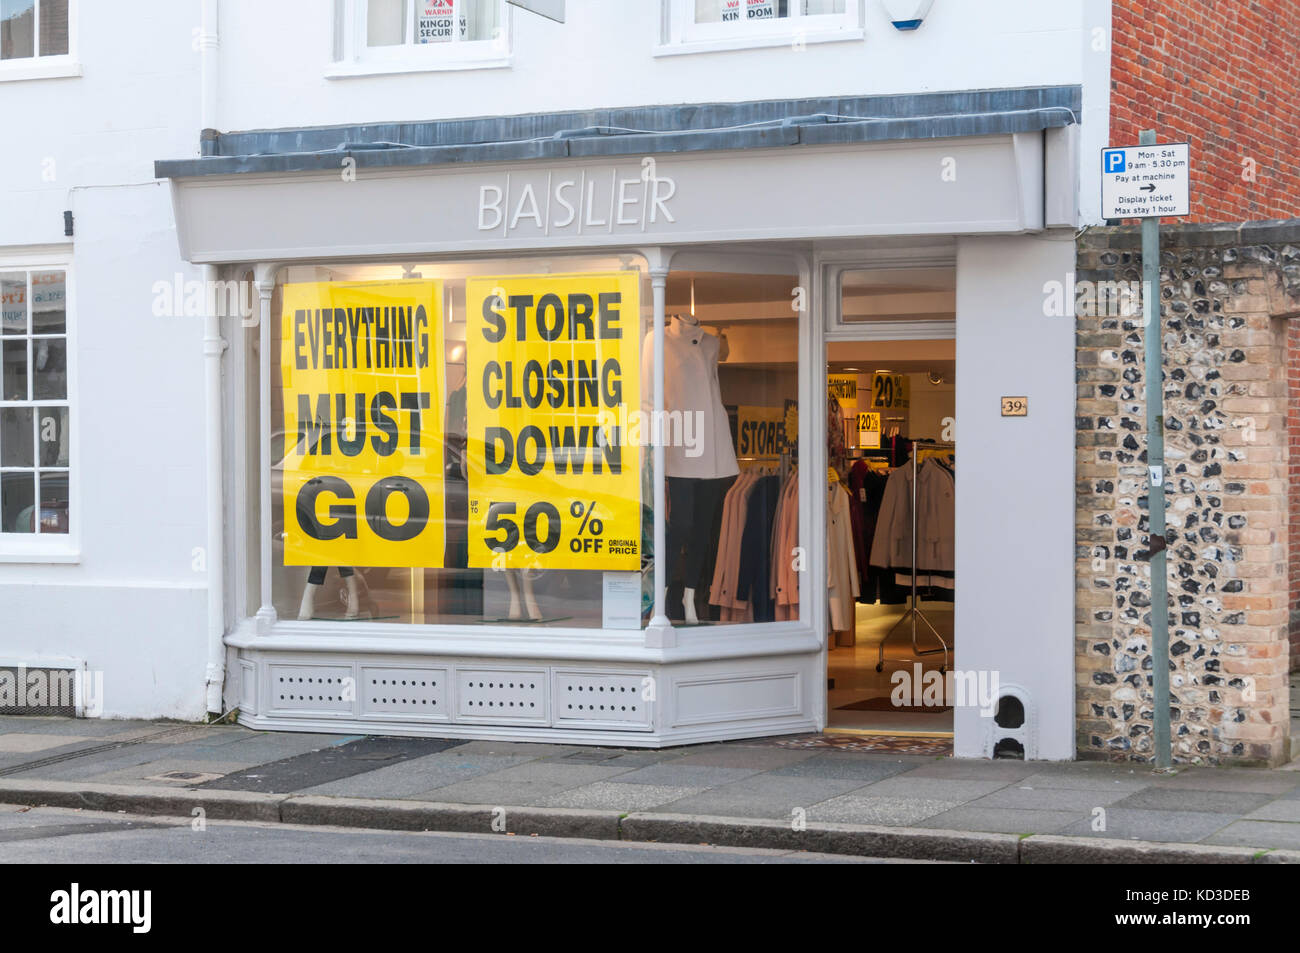 Branch of Basler women's clothing shop in Chichester having a closing down sale. - Stock Image